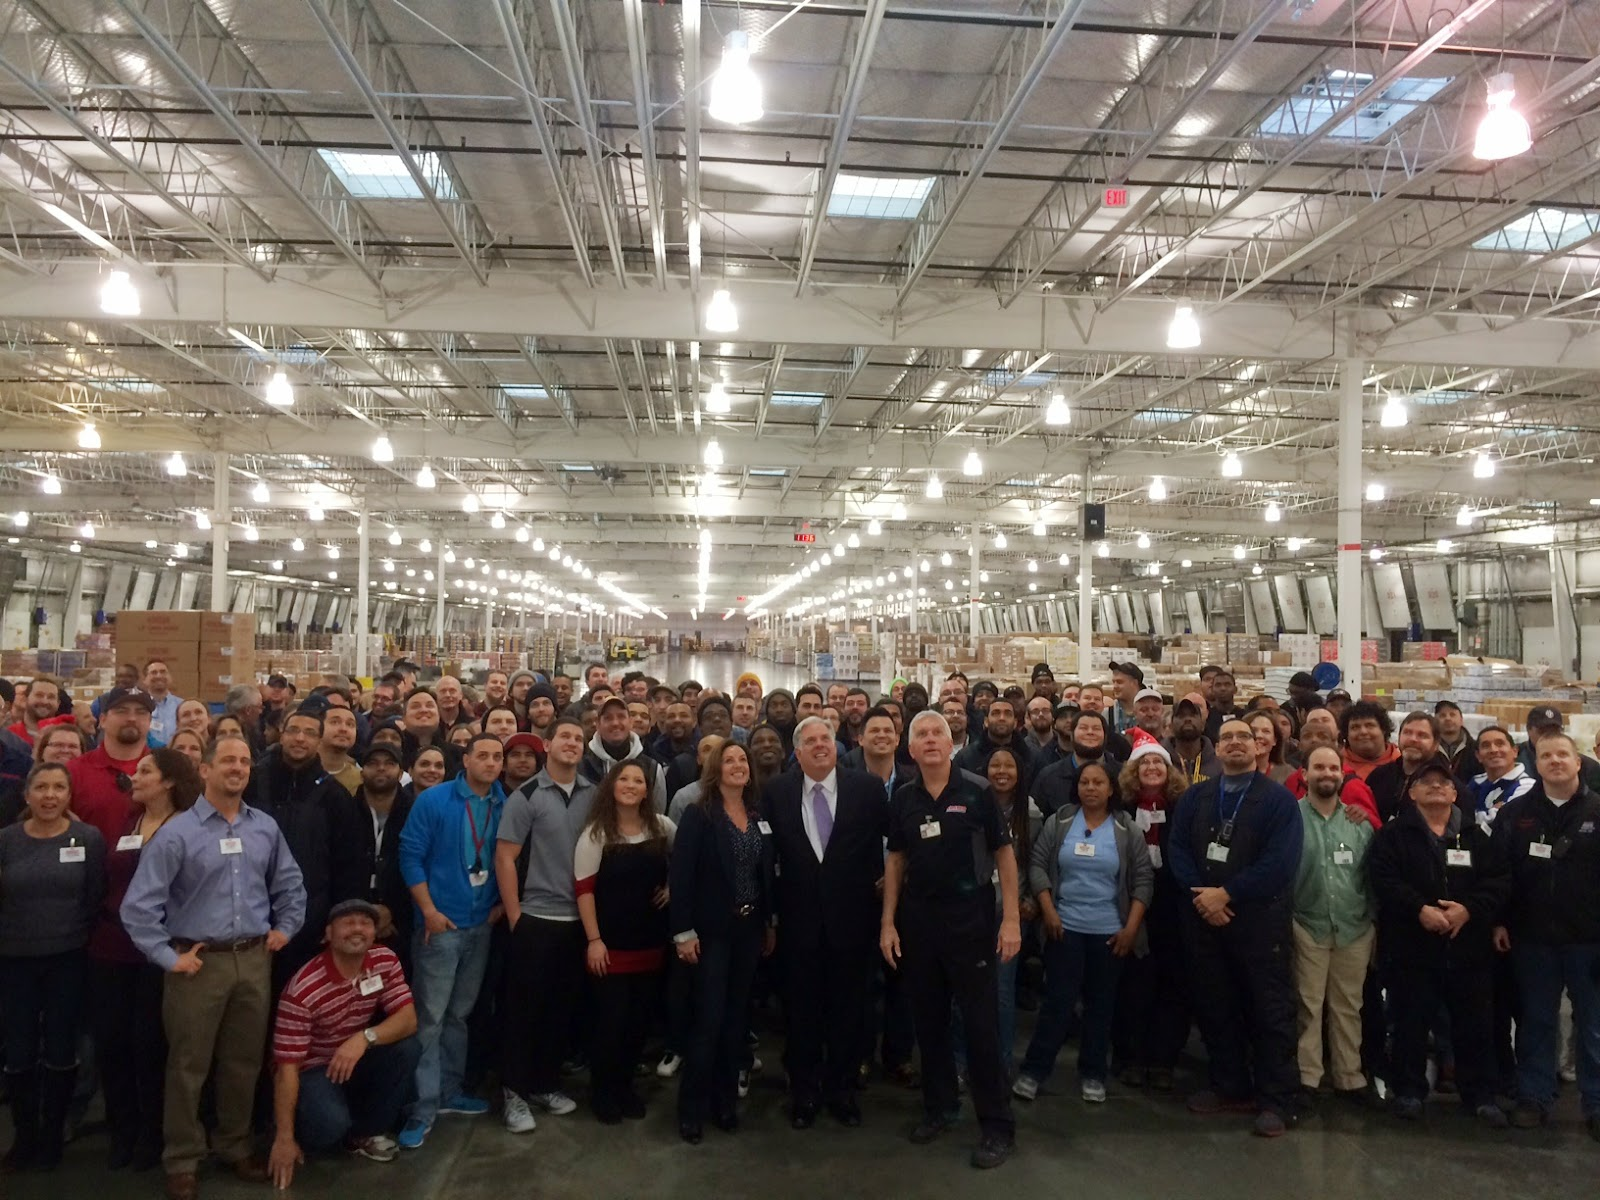 Governor Elect Larry Hogan Visits Costco Distribution Facility In Frederick County Monrovia Md